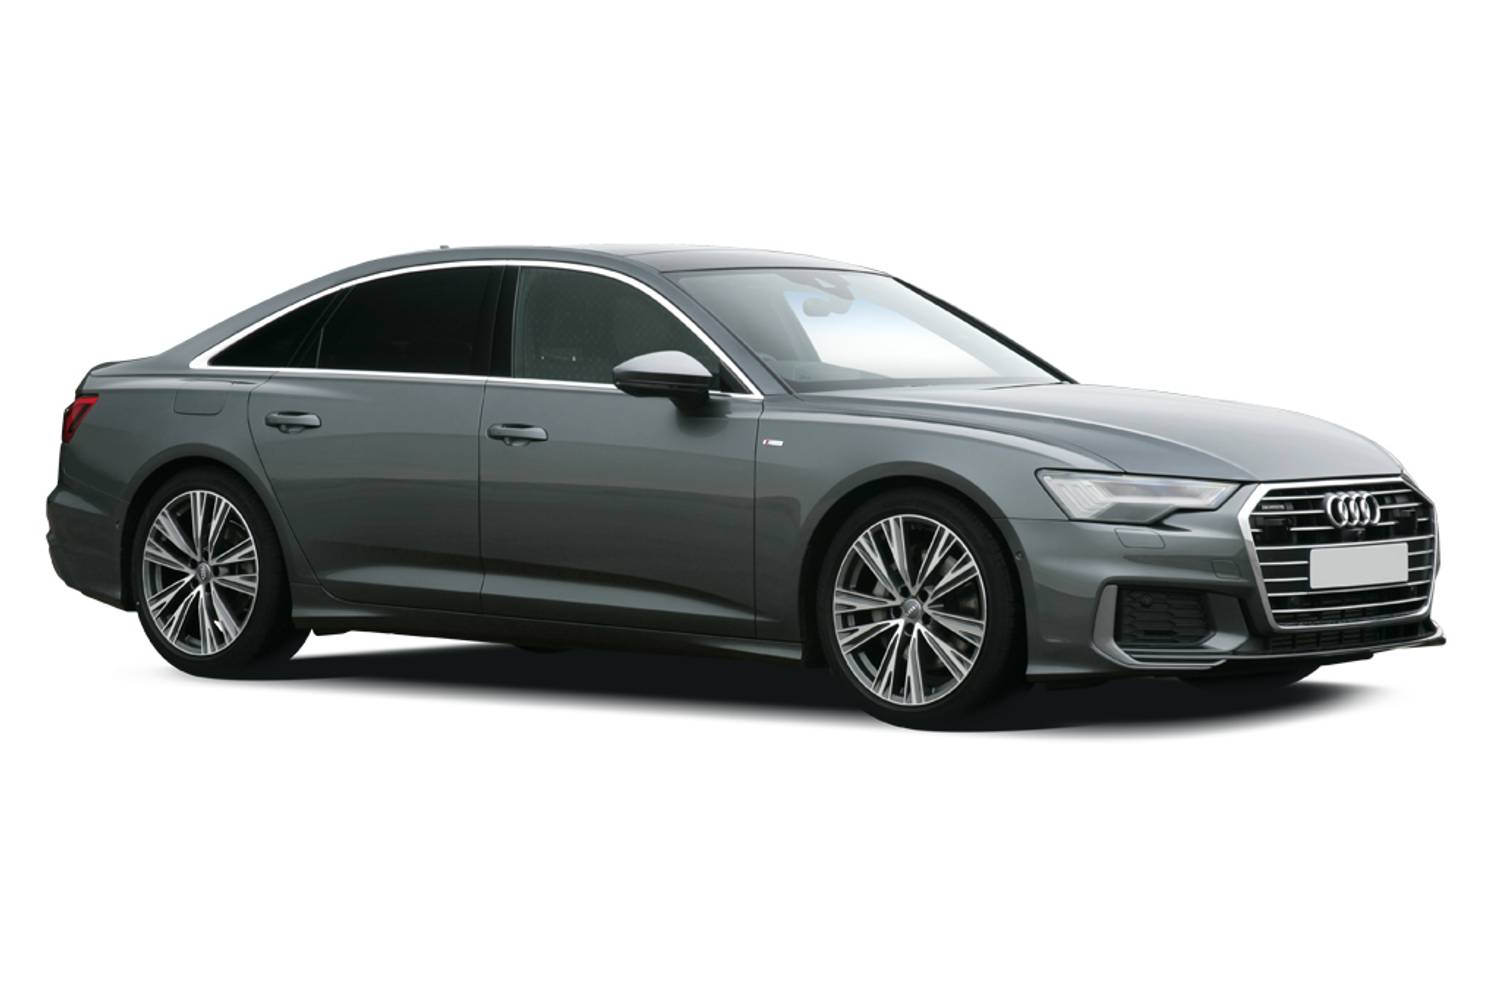 New Audi A6 Saloon 55 Tfsi Quattro Sport 4 Door S Tronic 2019 For Sale